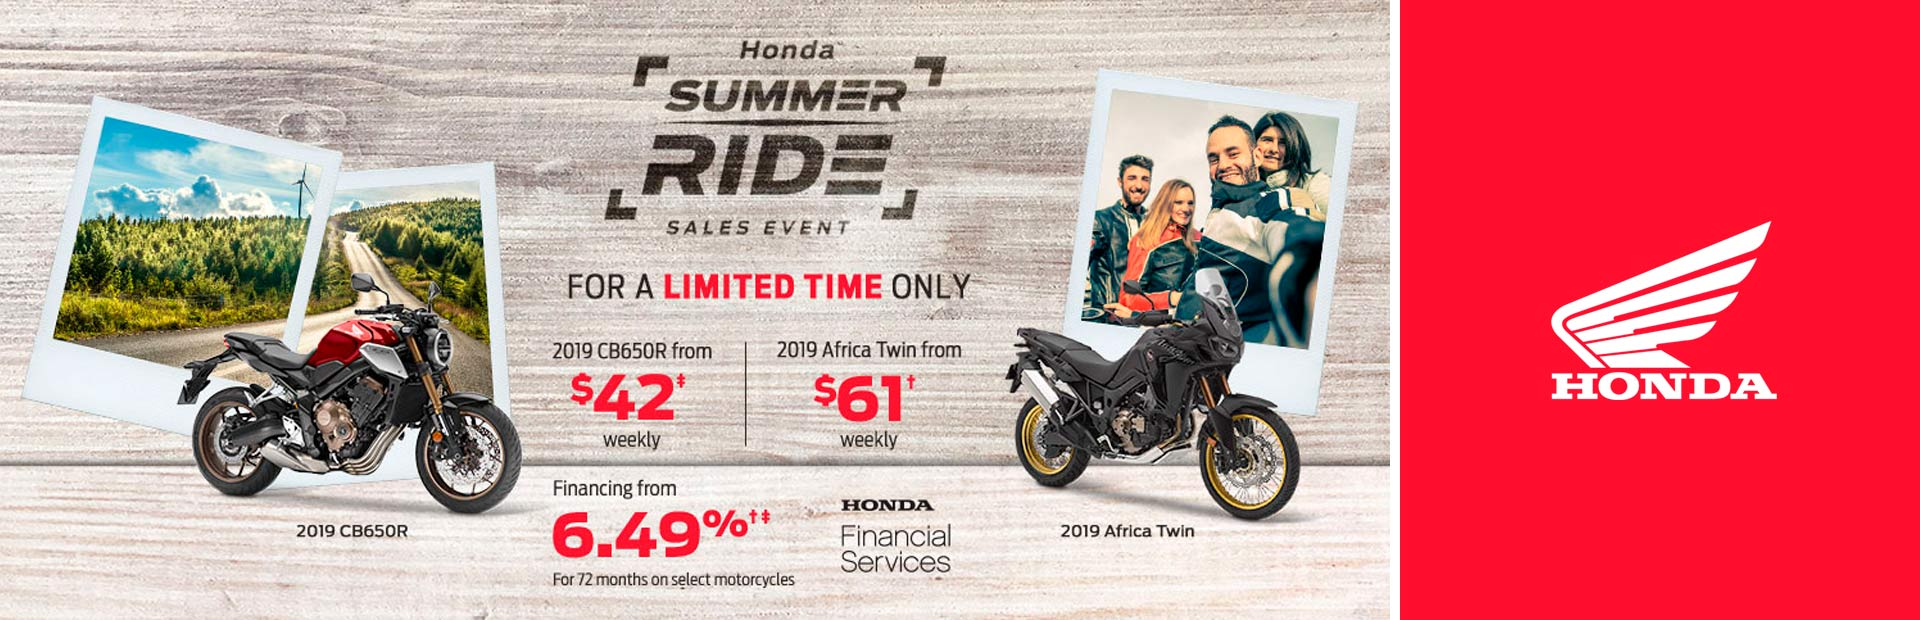 Summer Ride Sales Event - motorcycles